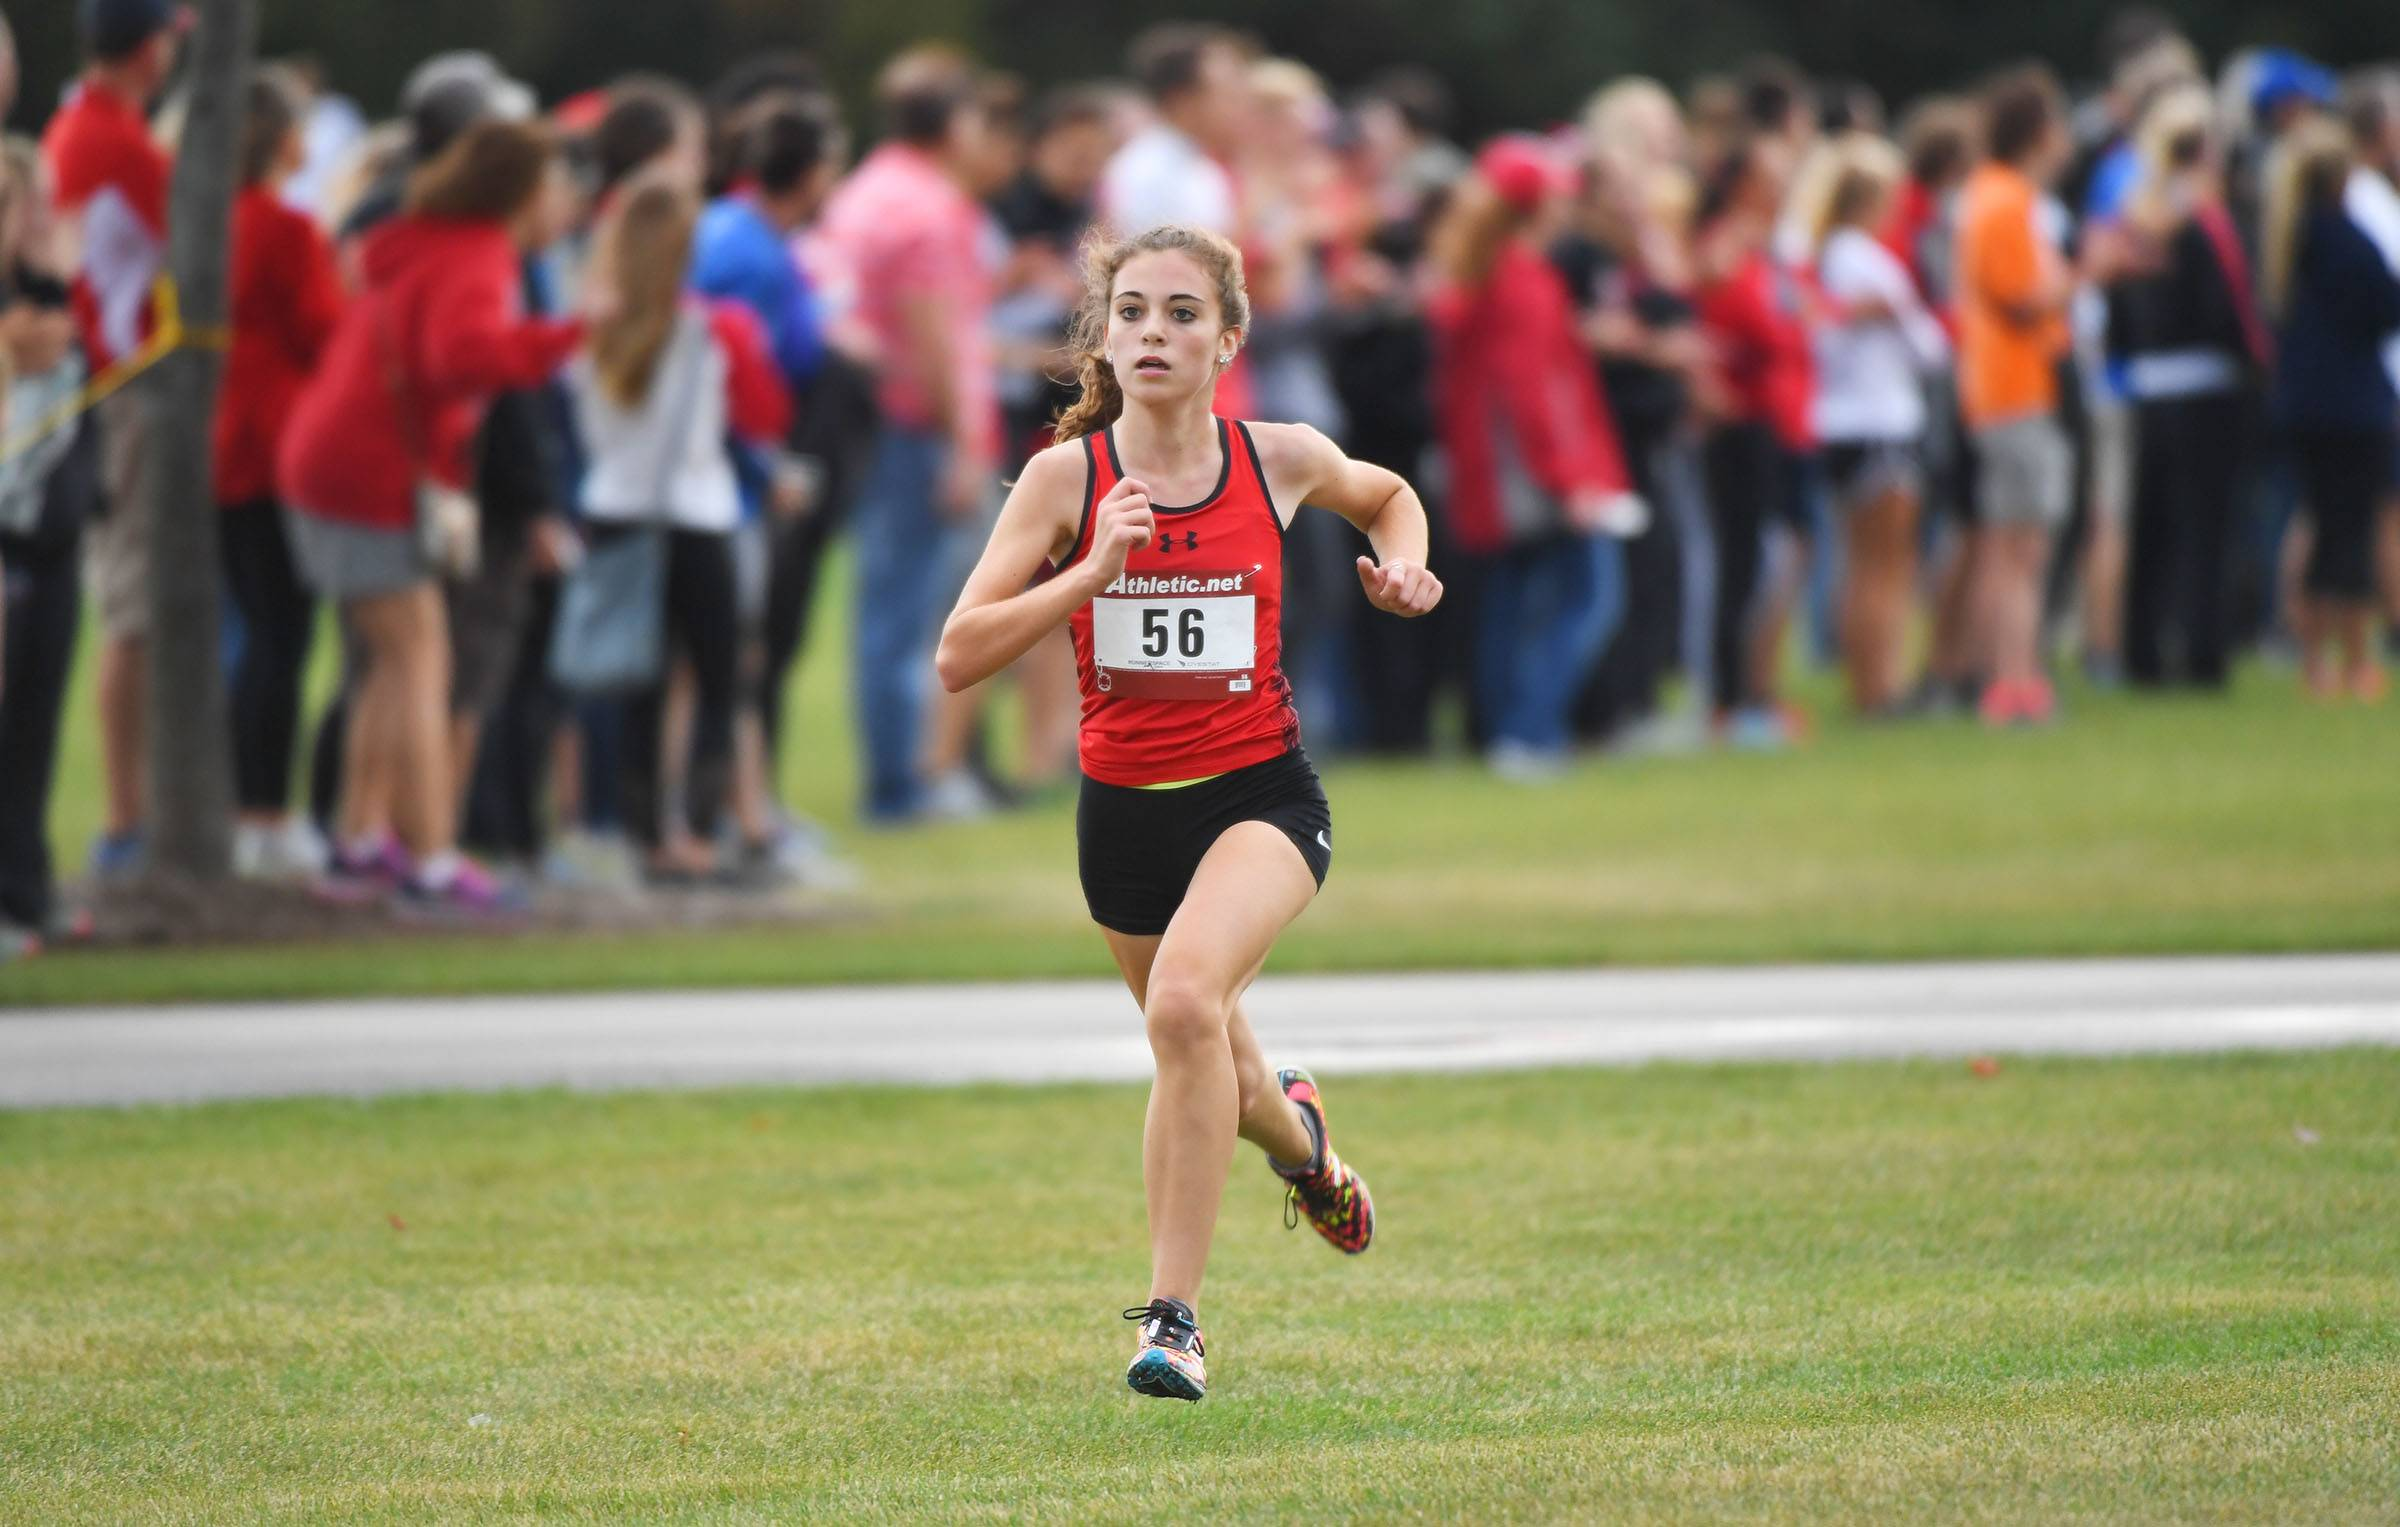 Mia Gianfrancesco has been the top runner on a Batavia team making its fourth straight Class 3A state appearance.